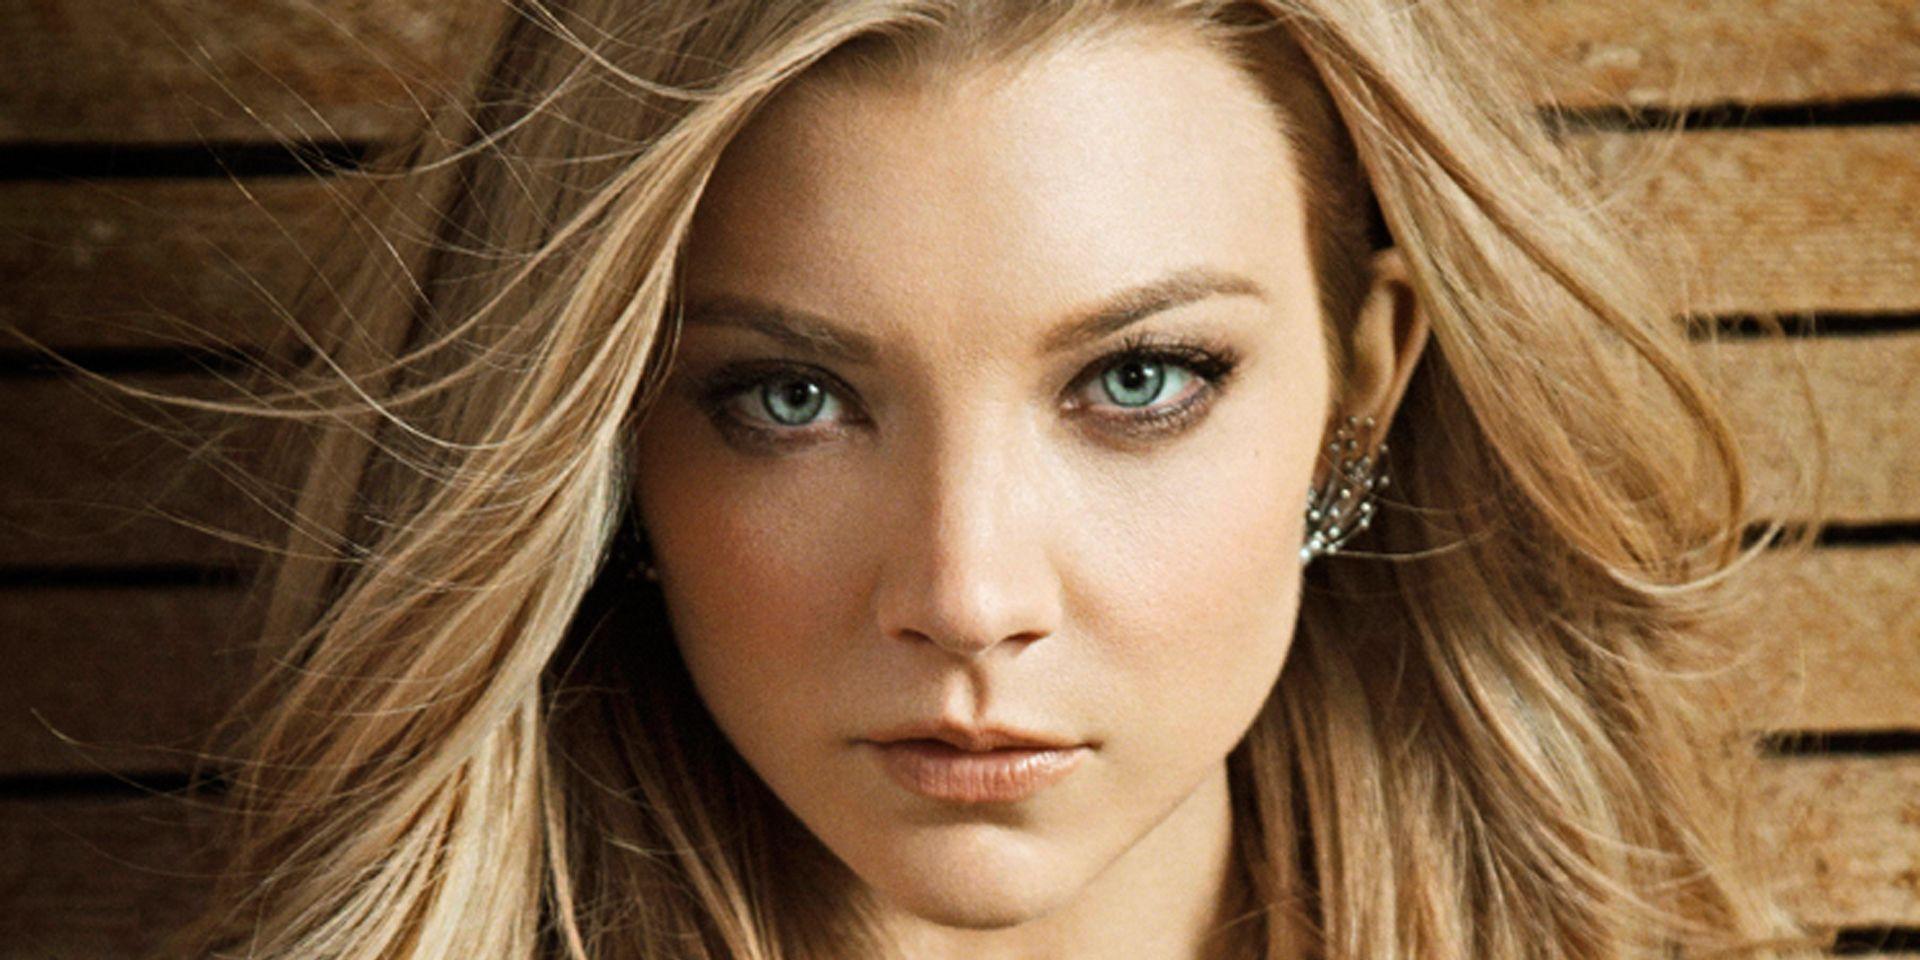 UPDATED: Game of Thrones star Natalie Dormer not cast in The Witcher Season 2 - Redanian Intelligence